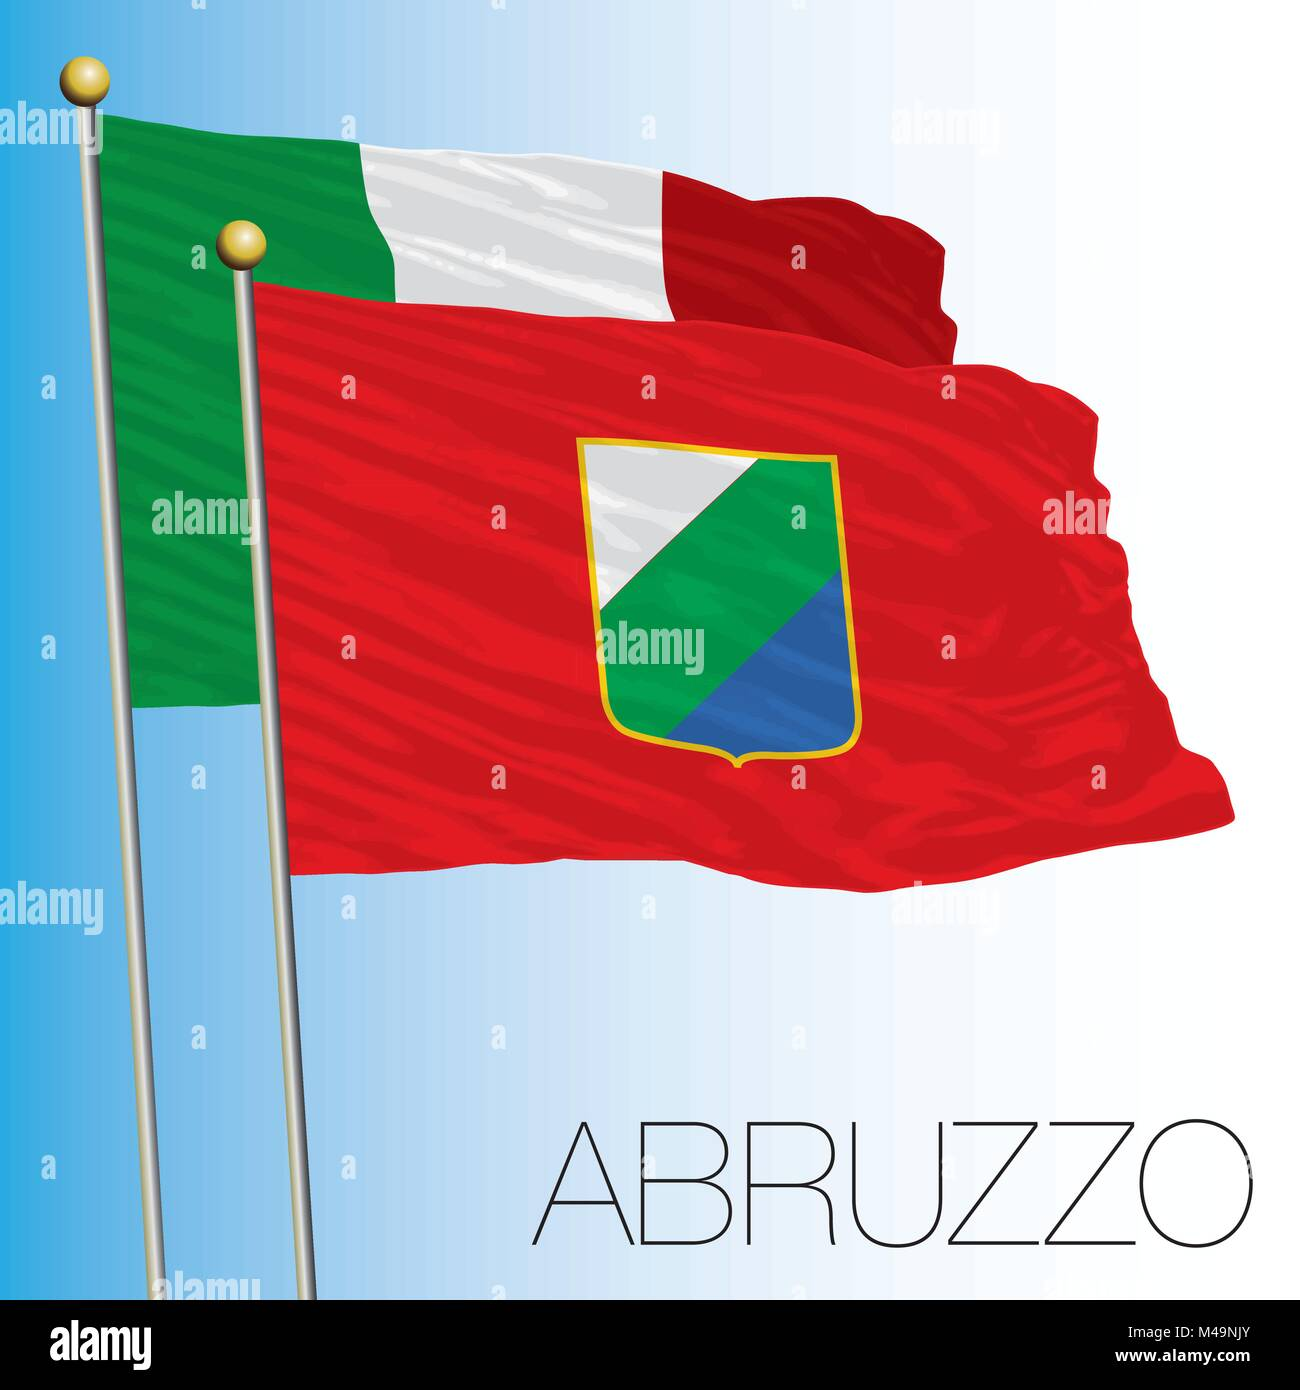 Abruzzo regional flag, Italian Republic, Italy, European Union - Stock Vector